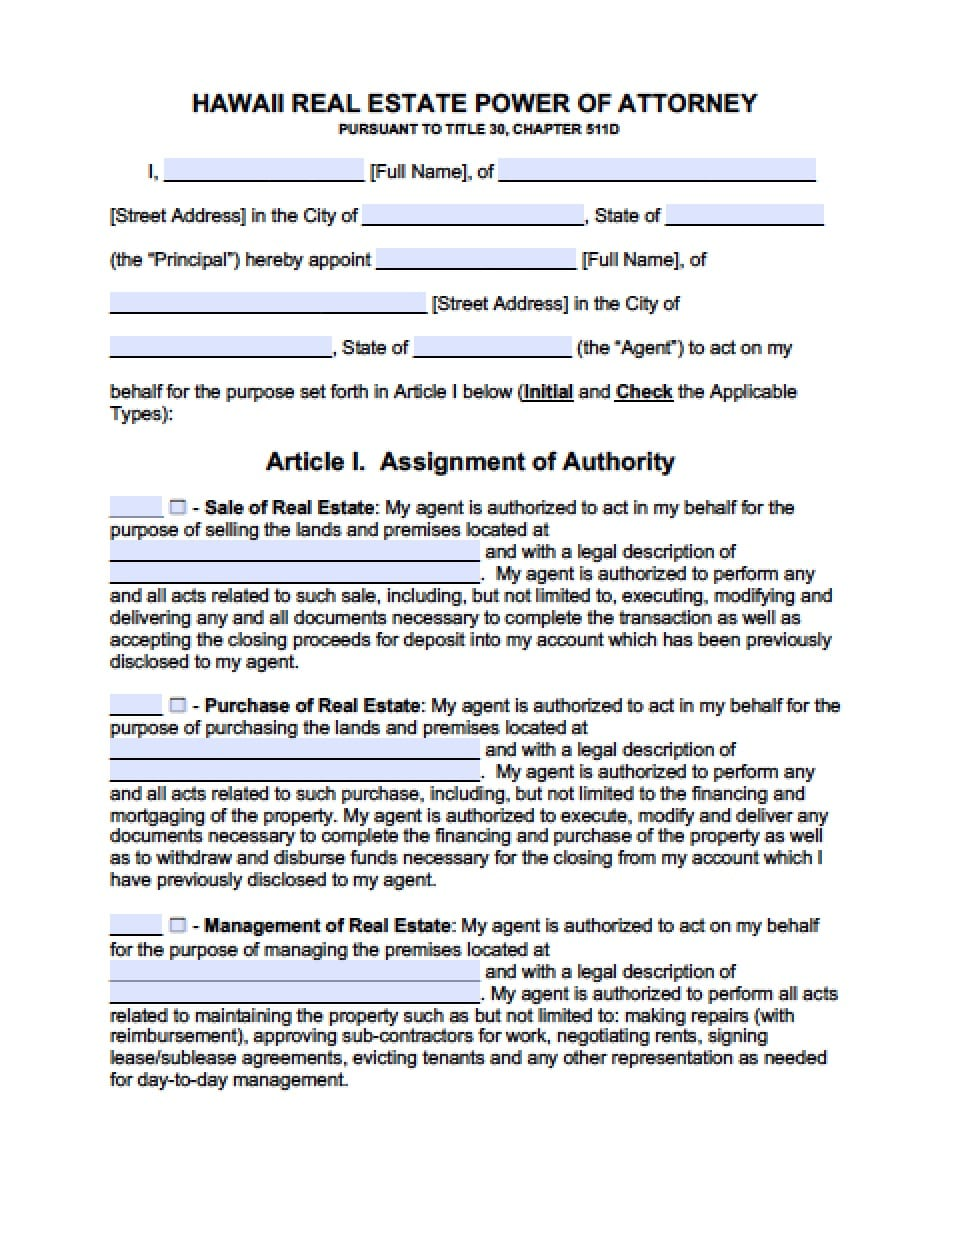 Hawaii Real Estate Only Power Of Attorney Form